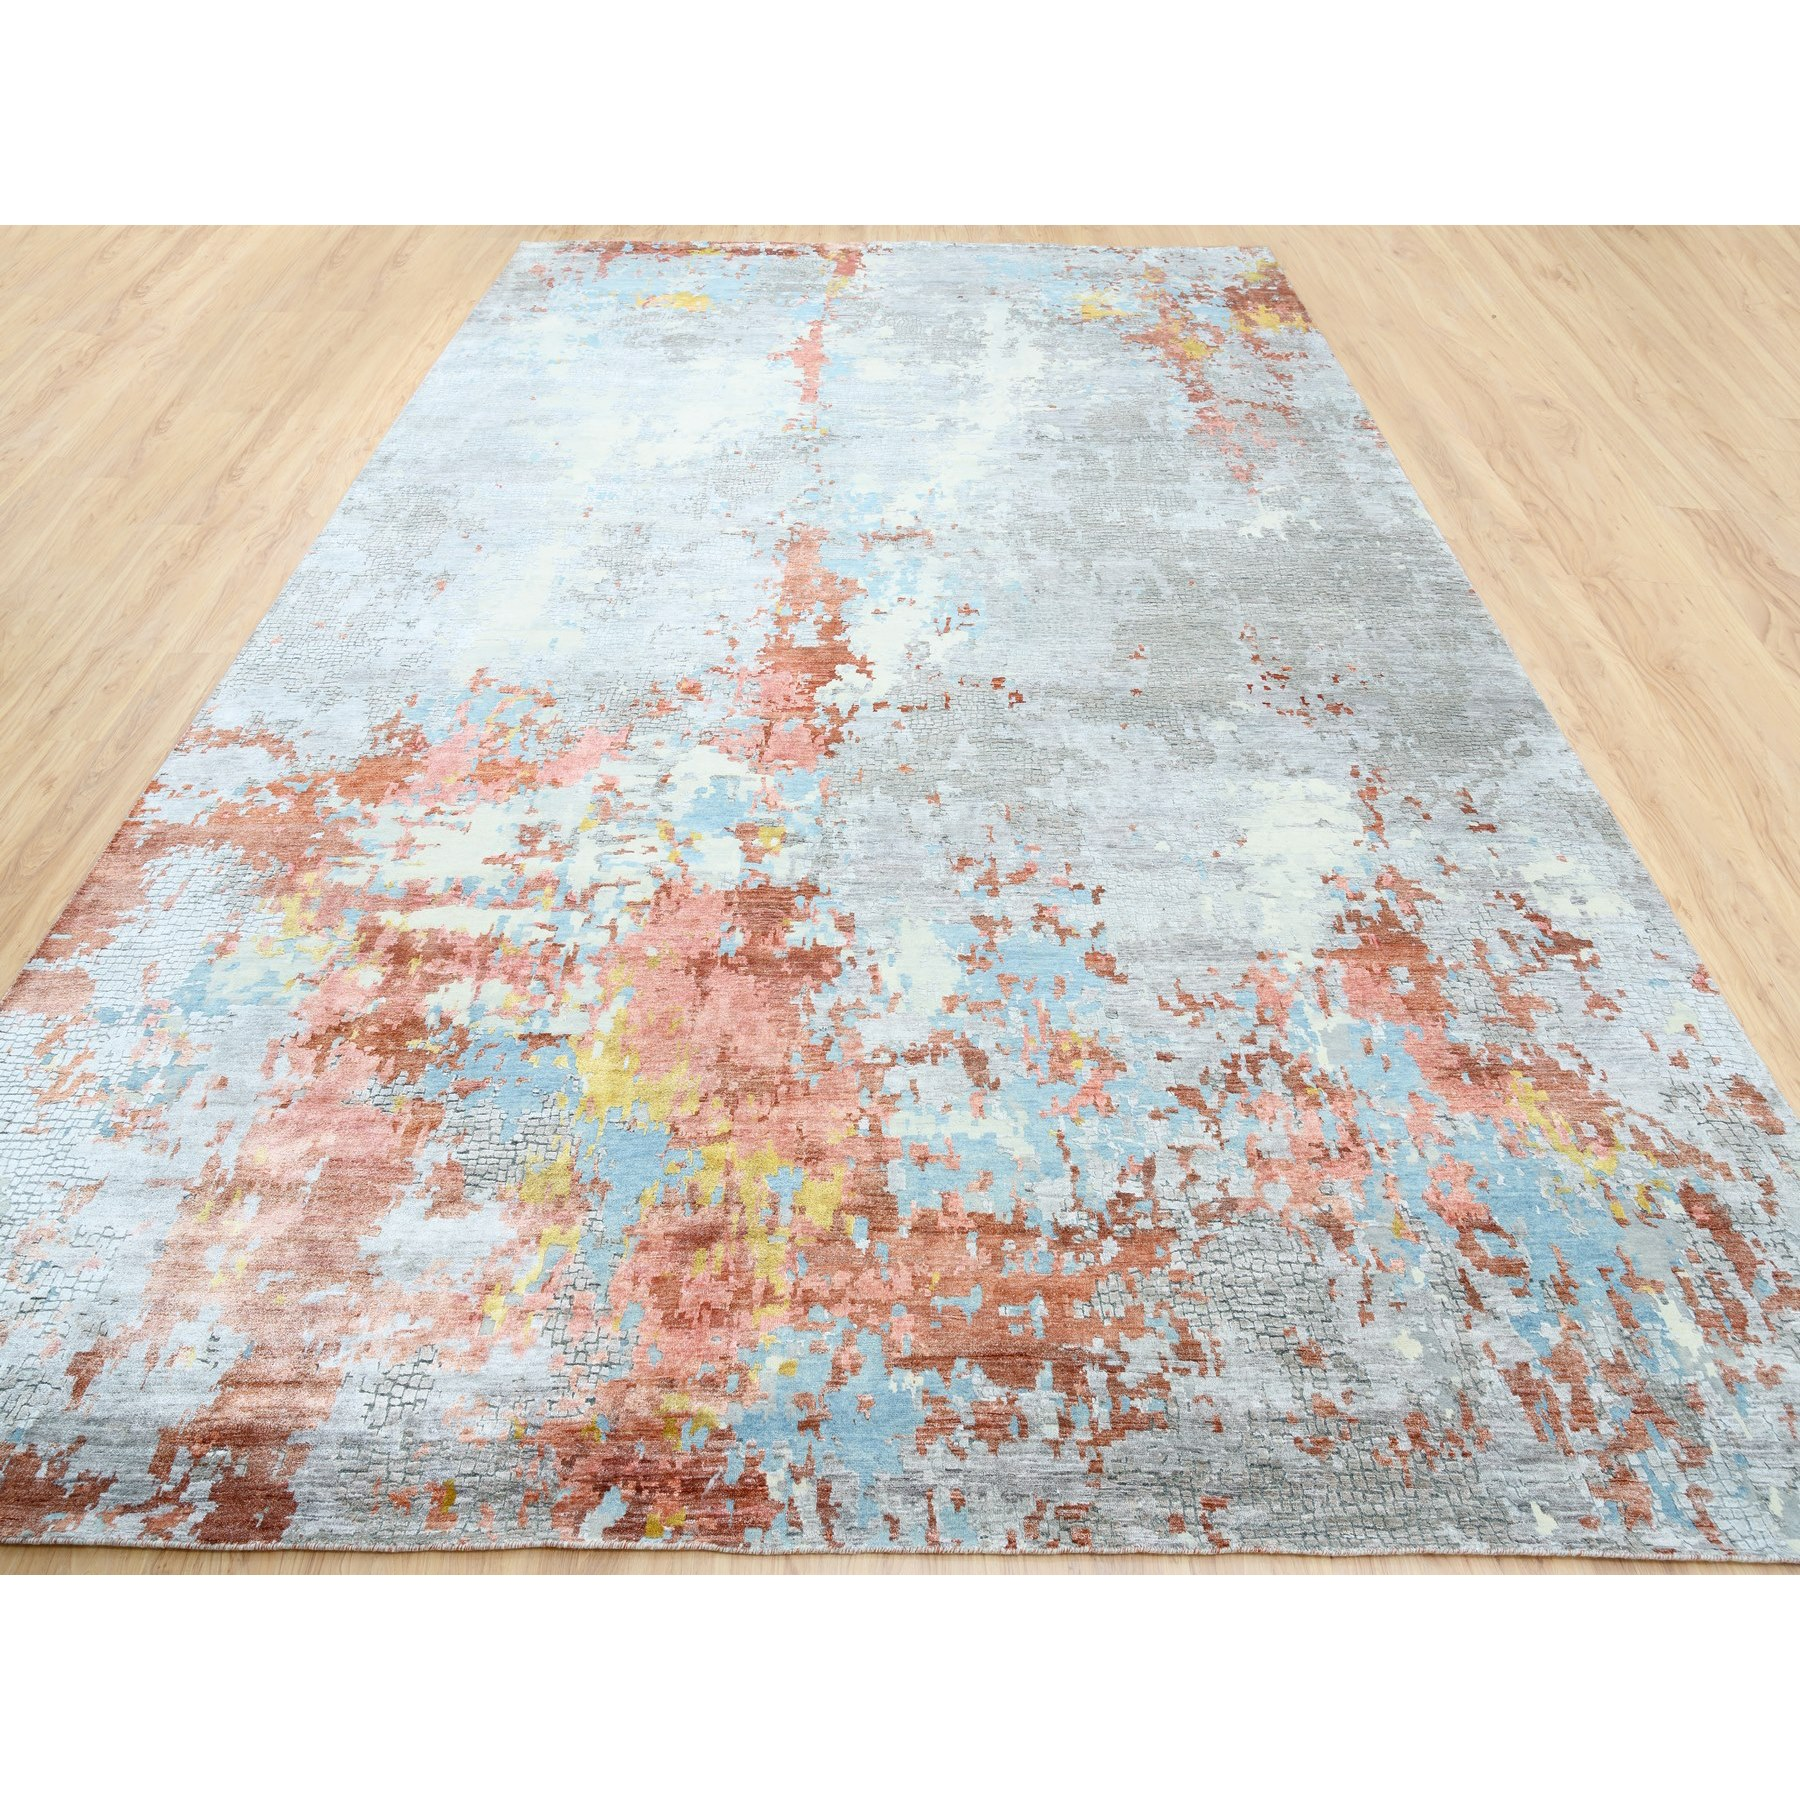 12'x18' Oversized Wool and Silk Abstract with Fire Mosaic Design Hand Knotted Oriental Rug